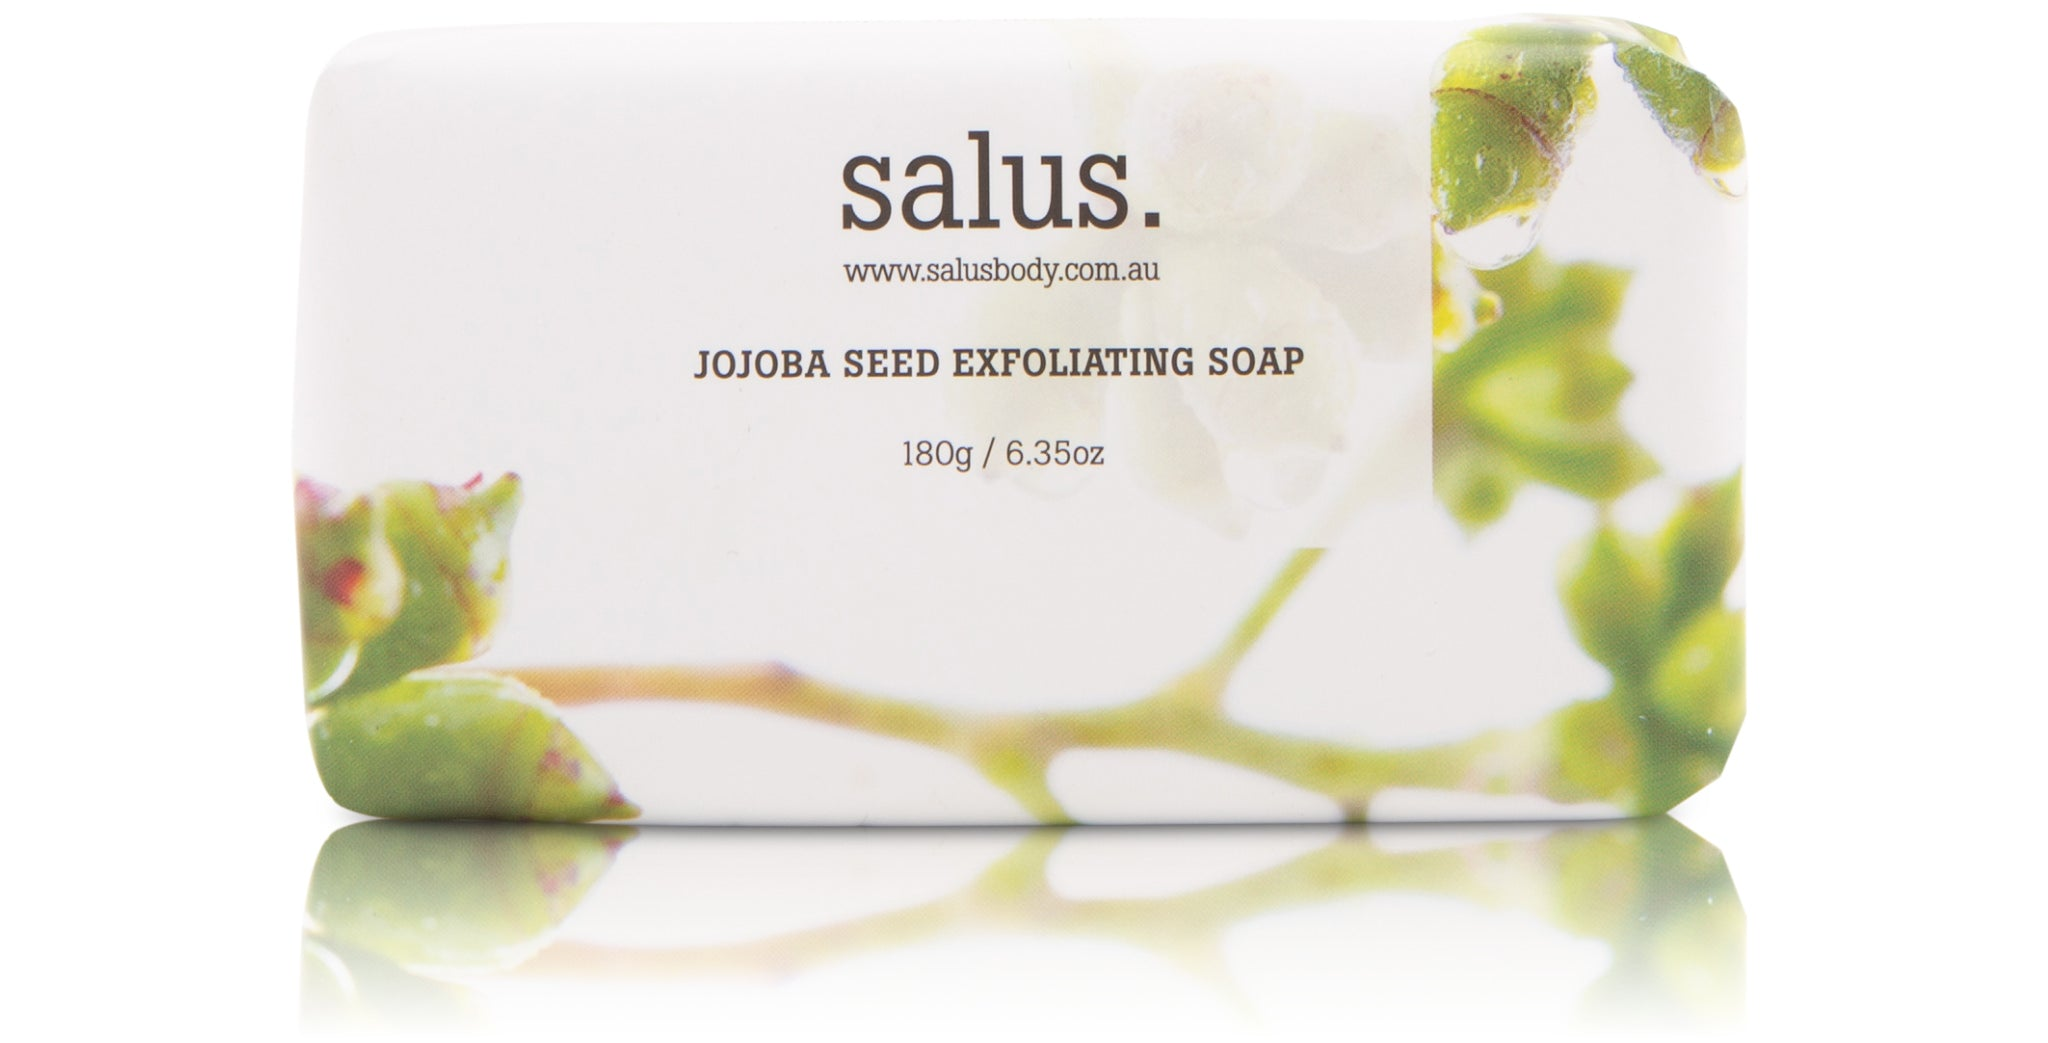 Jojoba Seed Exfoliating Soap